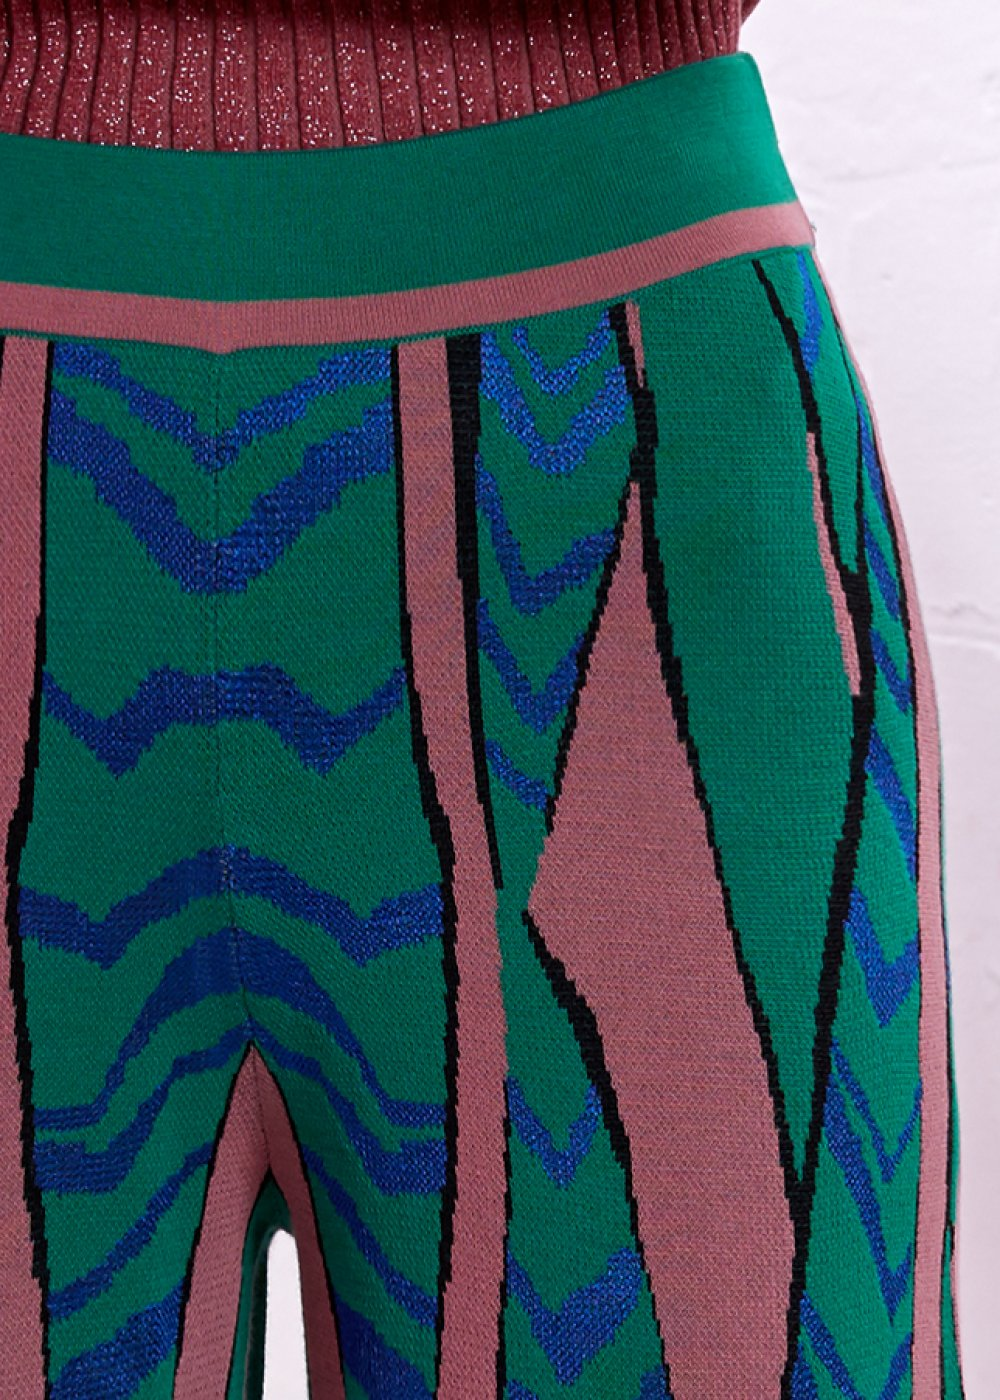 PATTERNED COLORFUL KNIT PANT